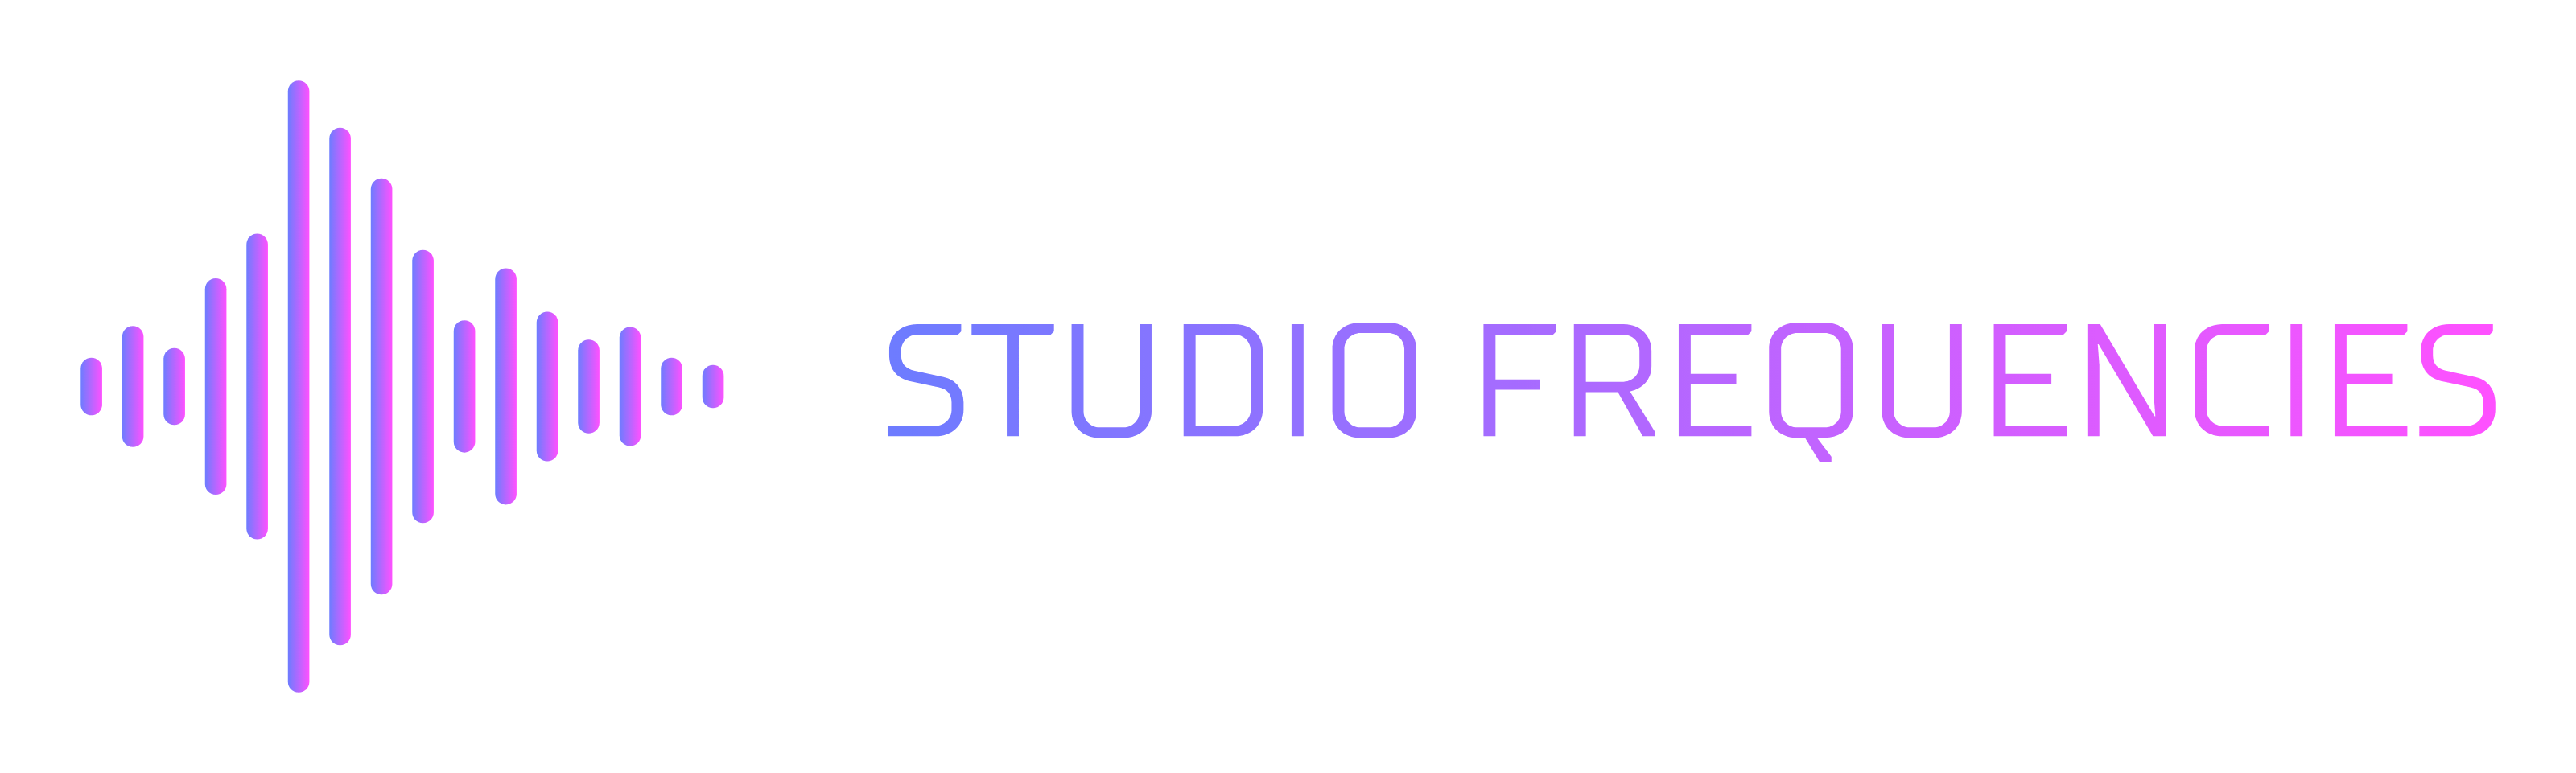 studiofrequencies.com